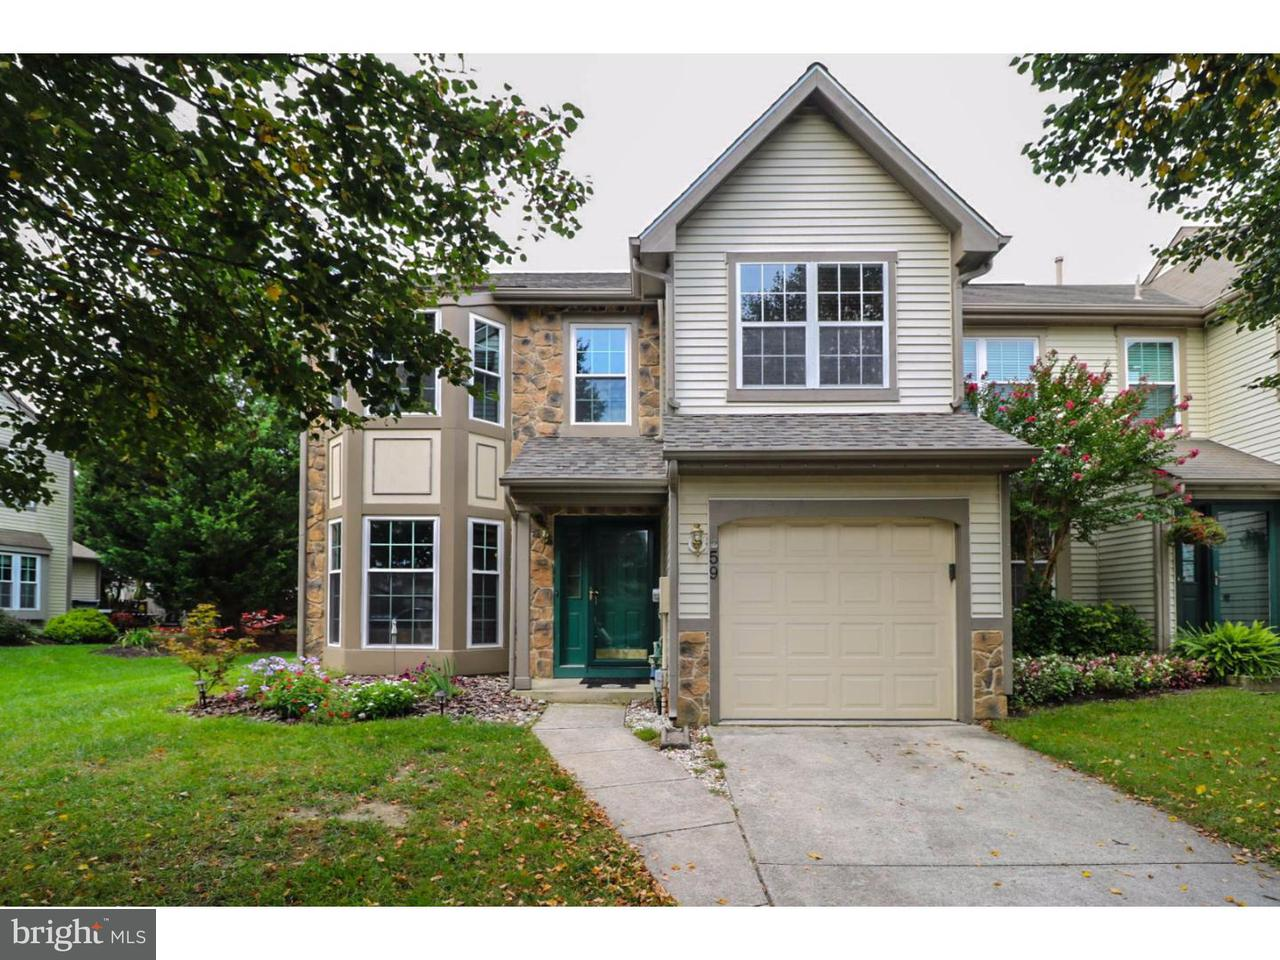 Townhouse for Sale at 59 SANDHURST Drive Mount Laurel, New Jersey 08054 United States